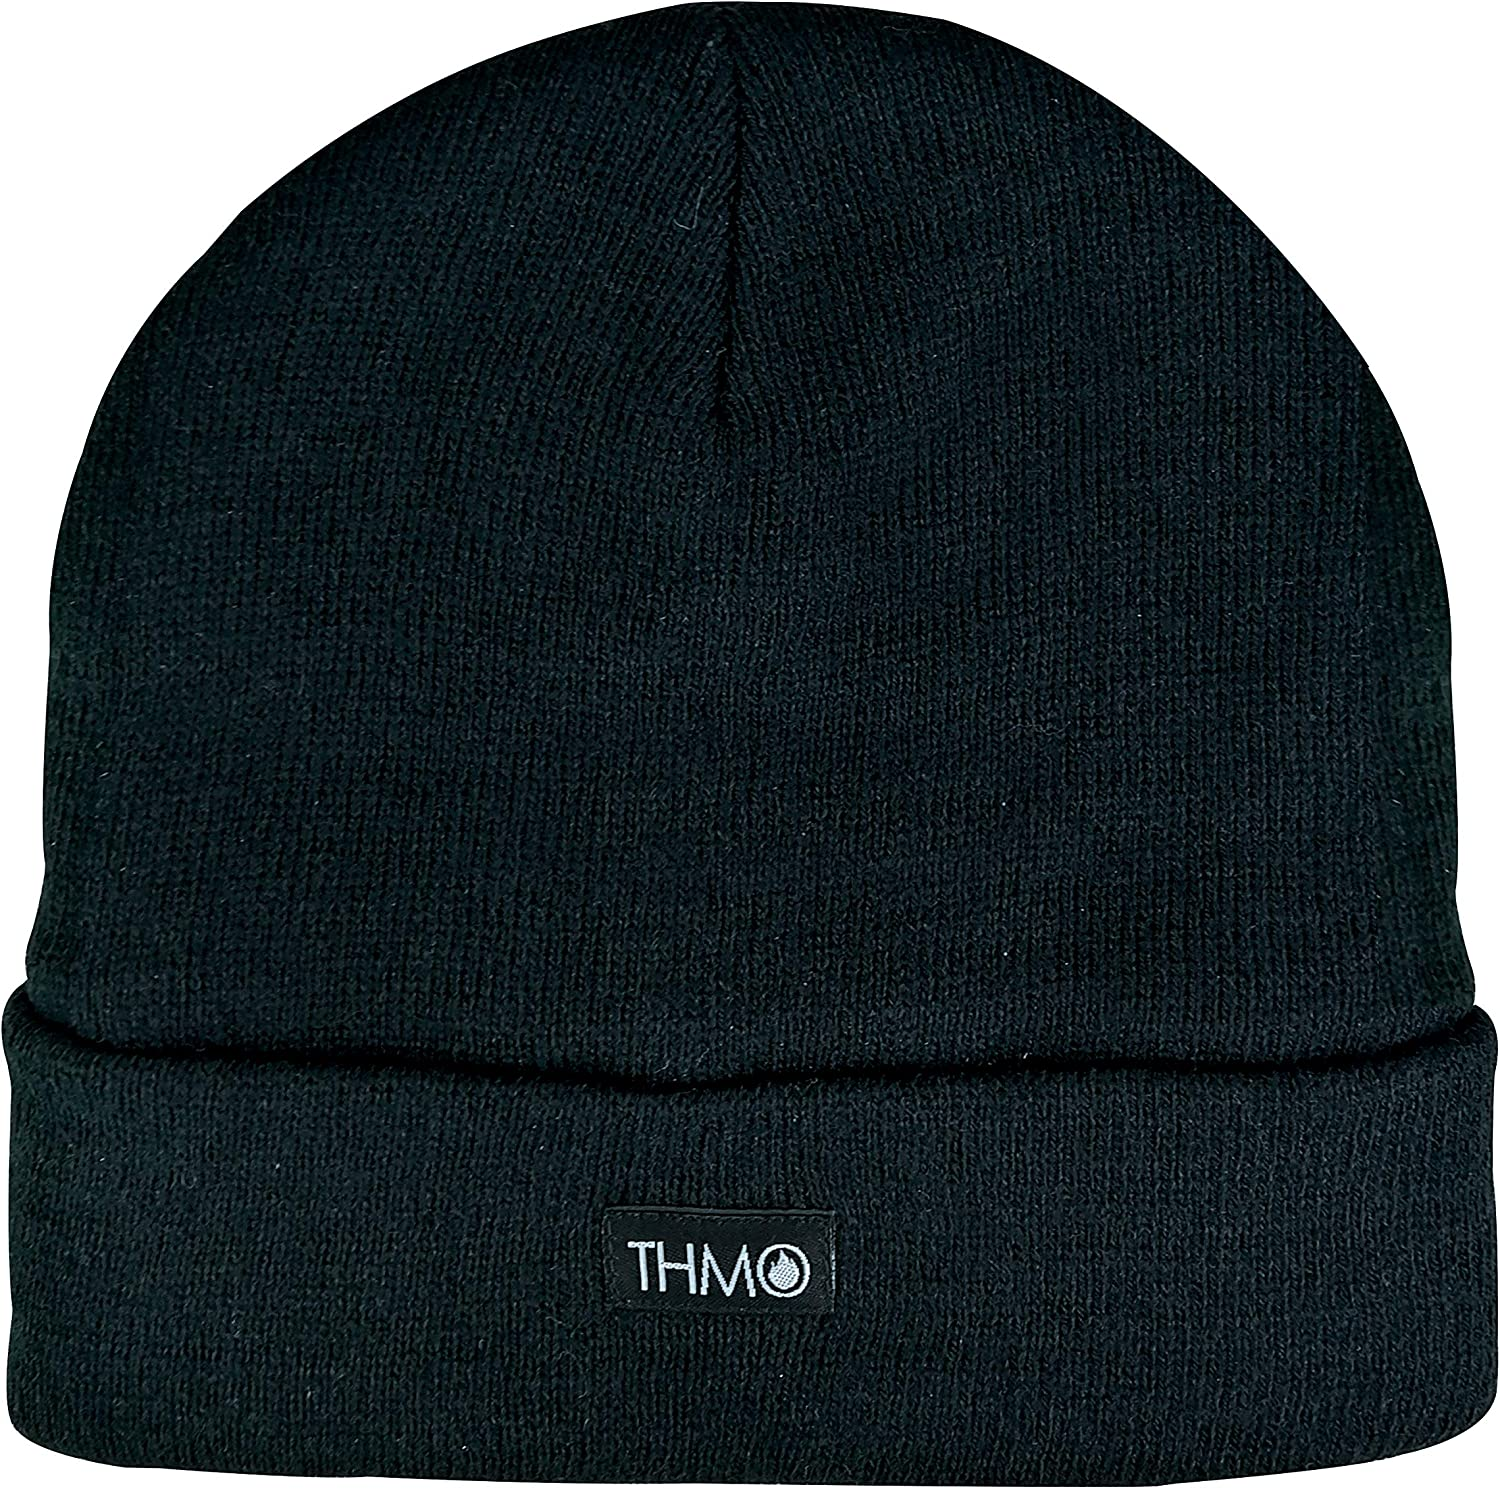 Men/'s Knitted Thinsulate Hat Fleece Lined Black Beanie Hat Thermal Winter Hats